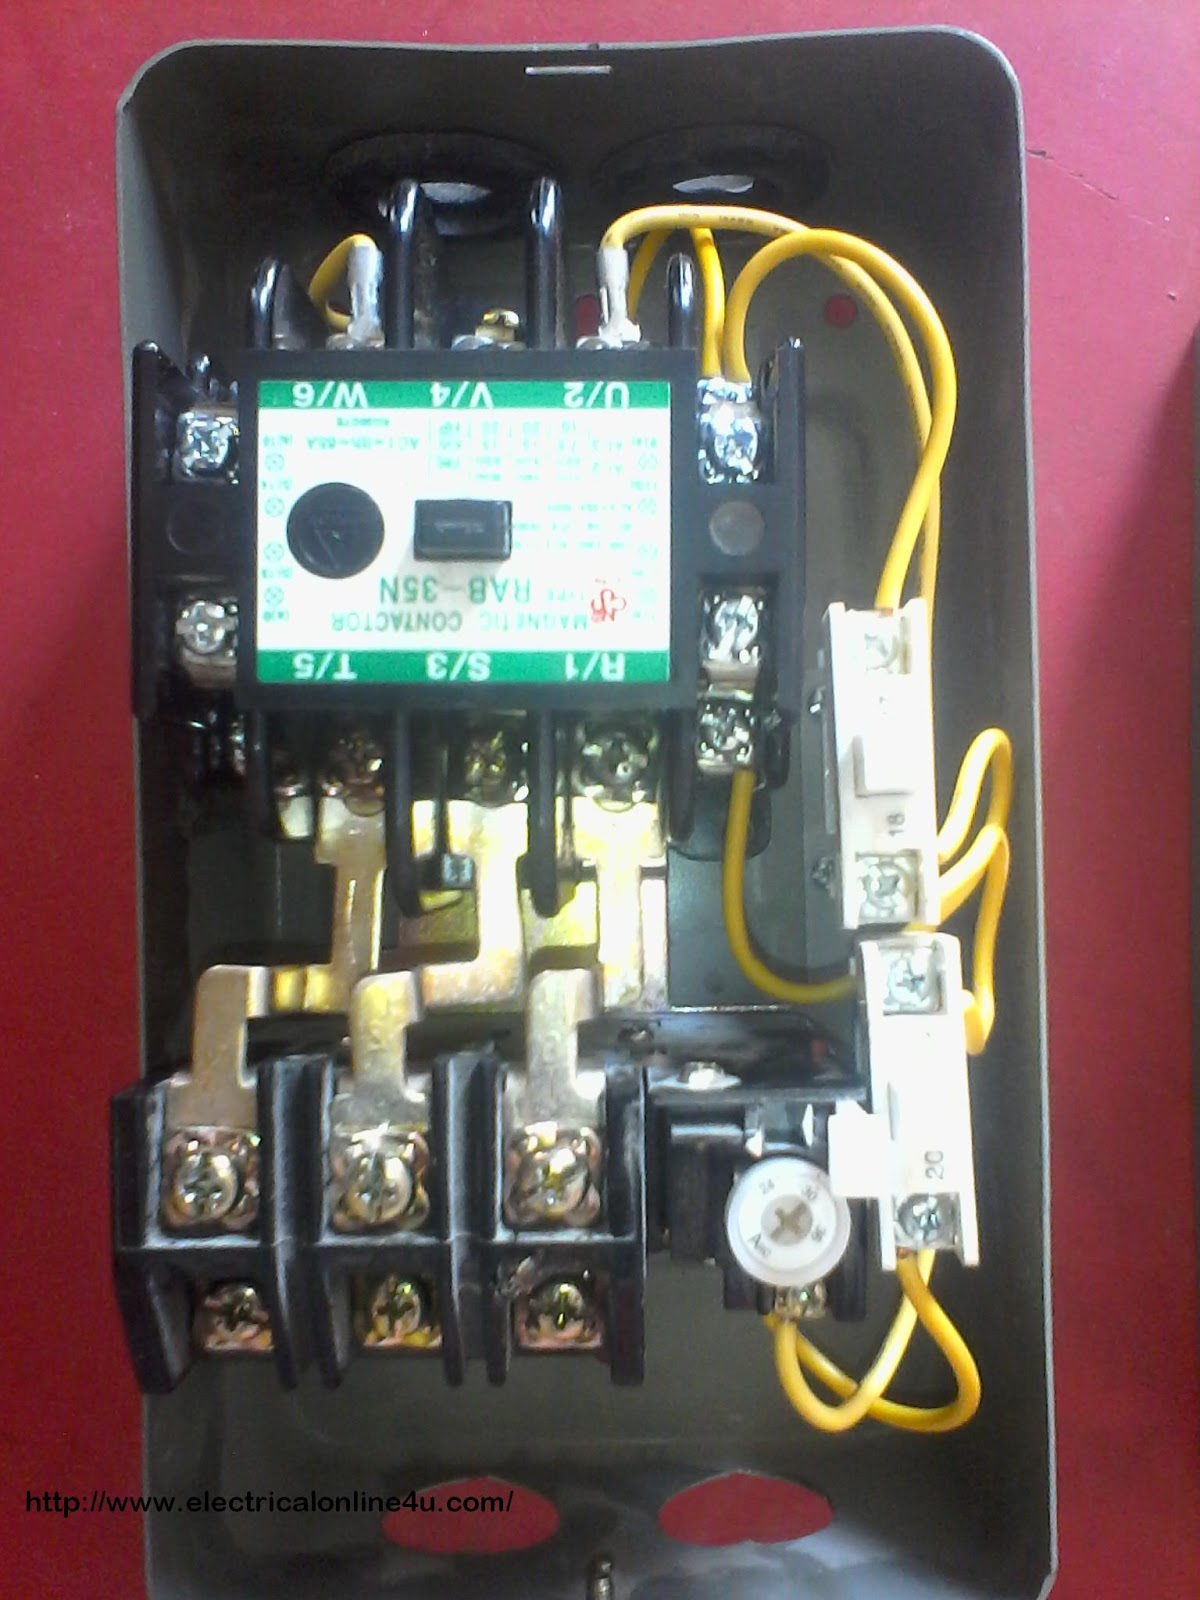 contactor%2Bwiring how to wire contactor and overload relay contactor wiring  at panicattacktreatment.co